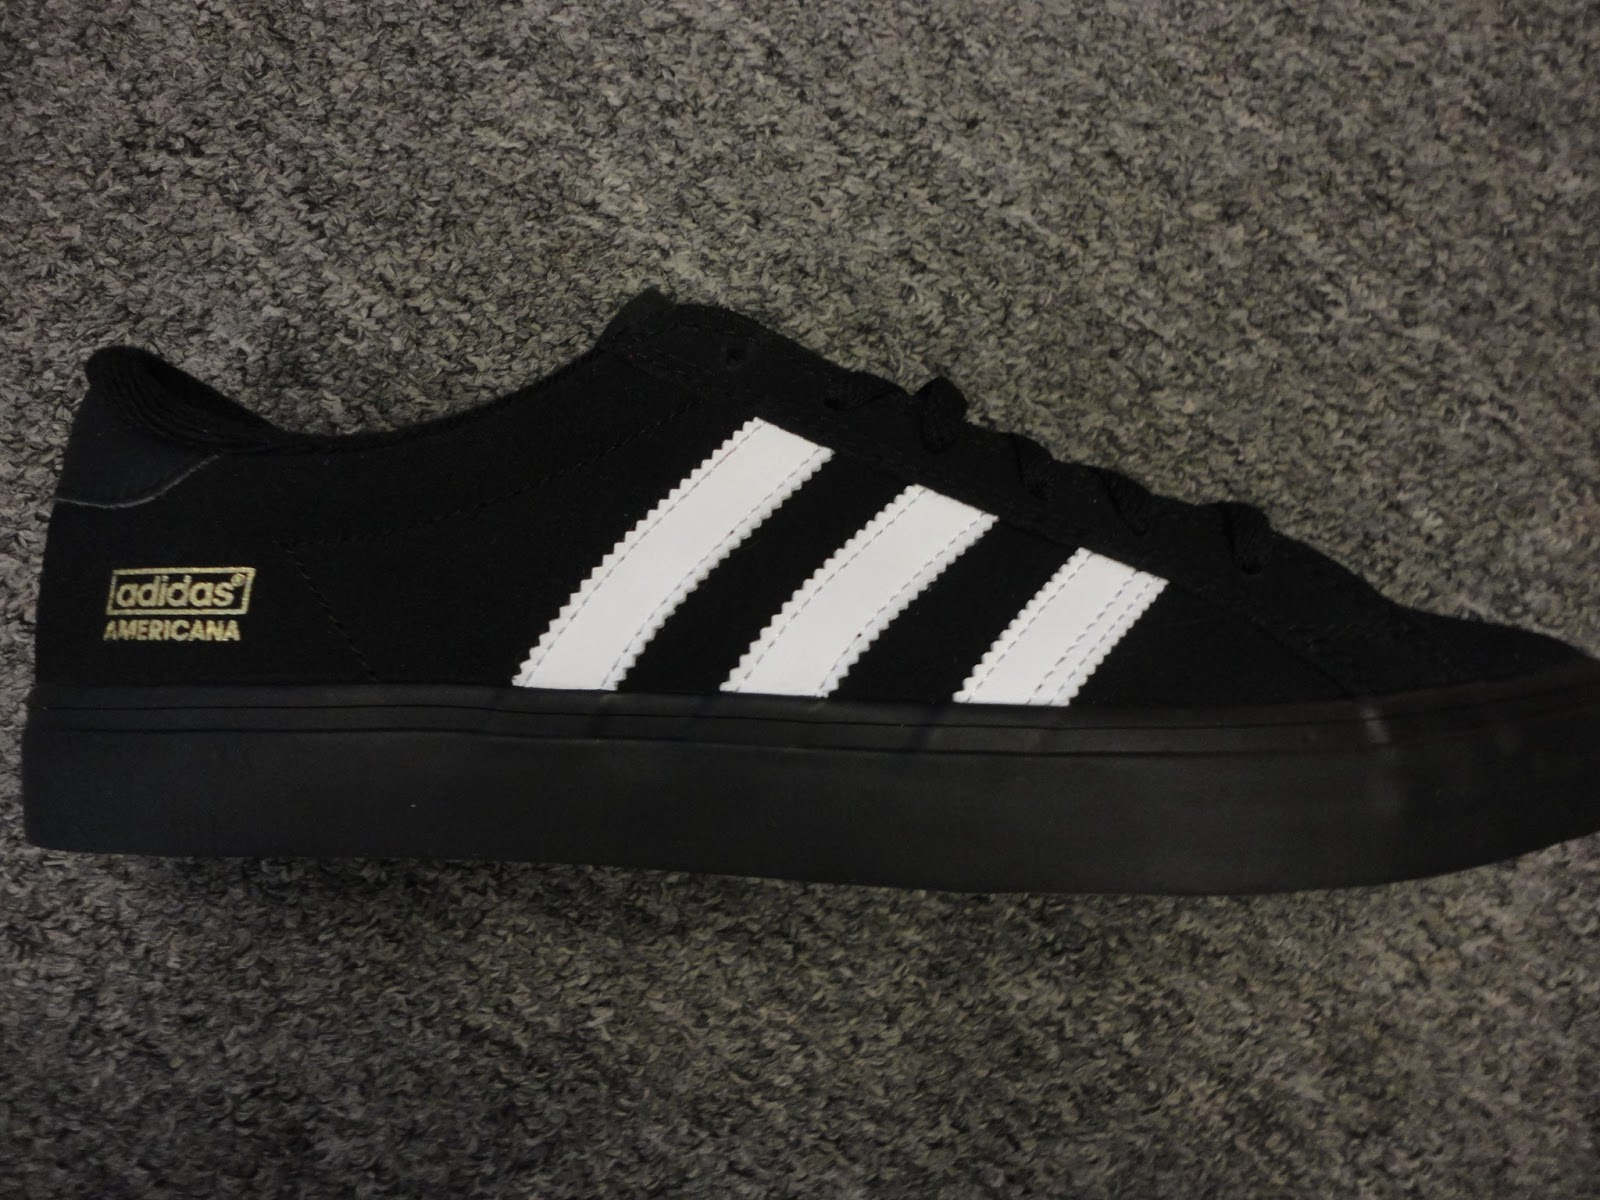 4ebb73dd8a6060 More new shoes from Adidas including the Americana Vin and Busenitz Vulc!